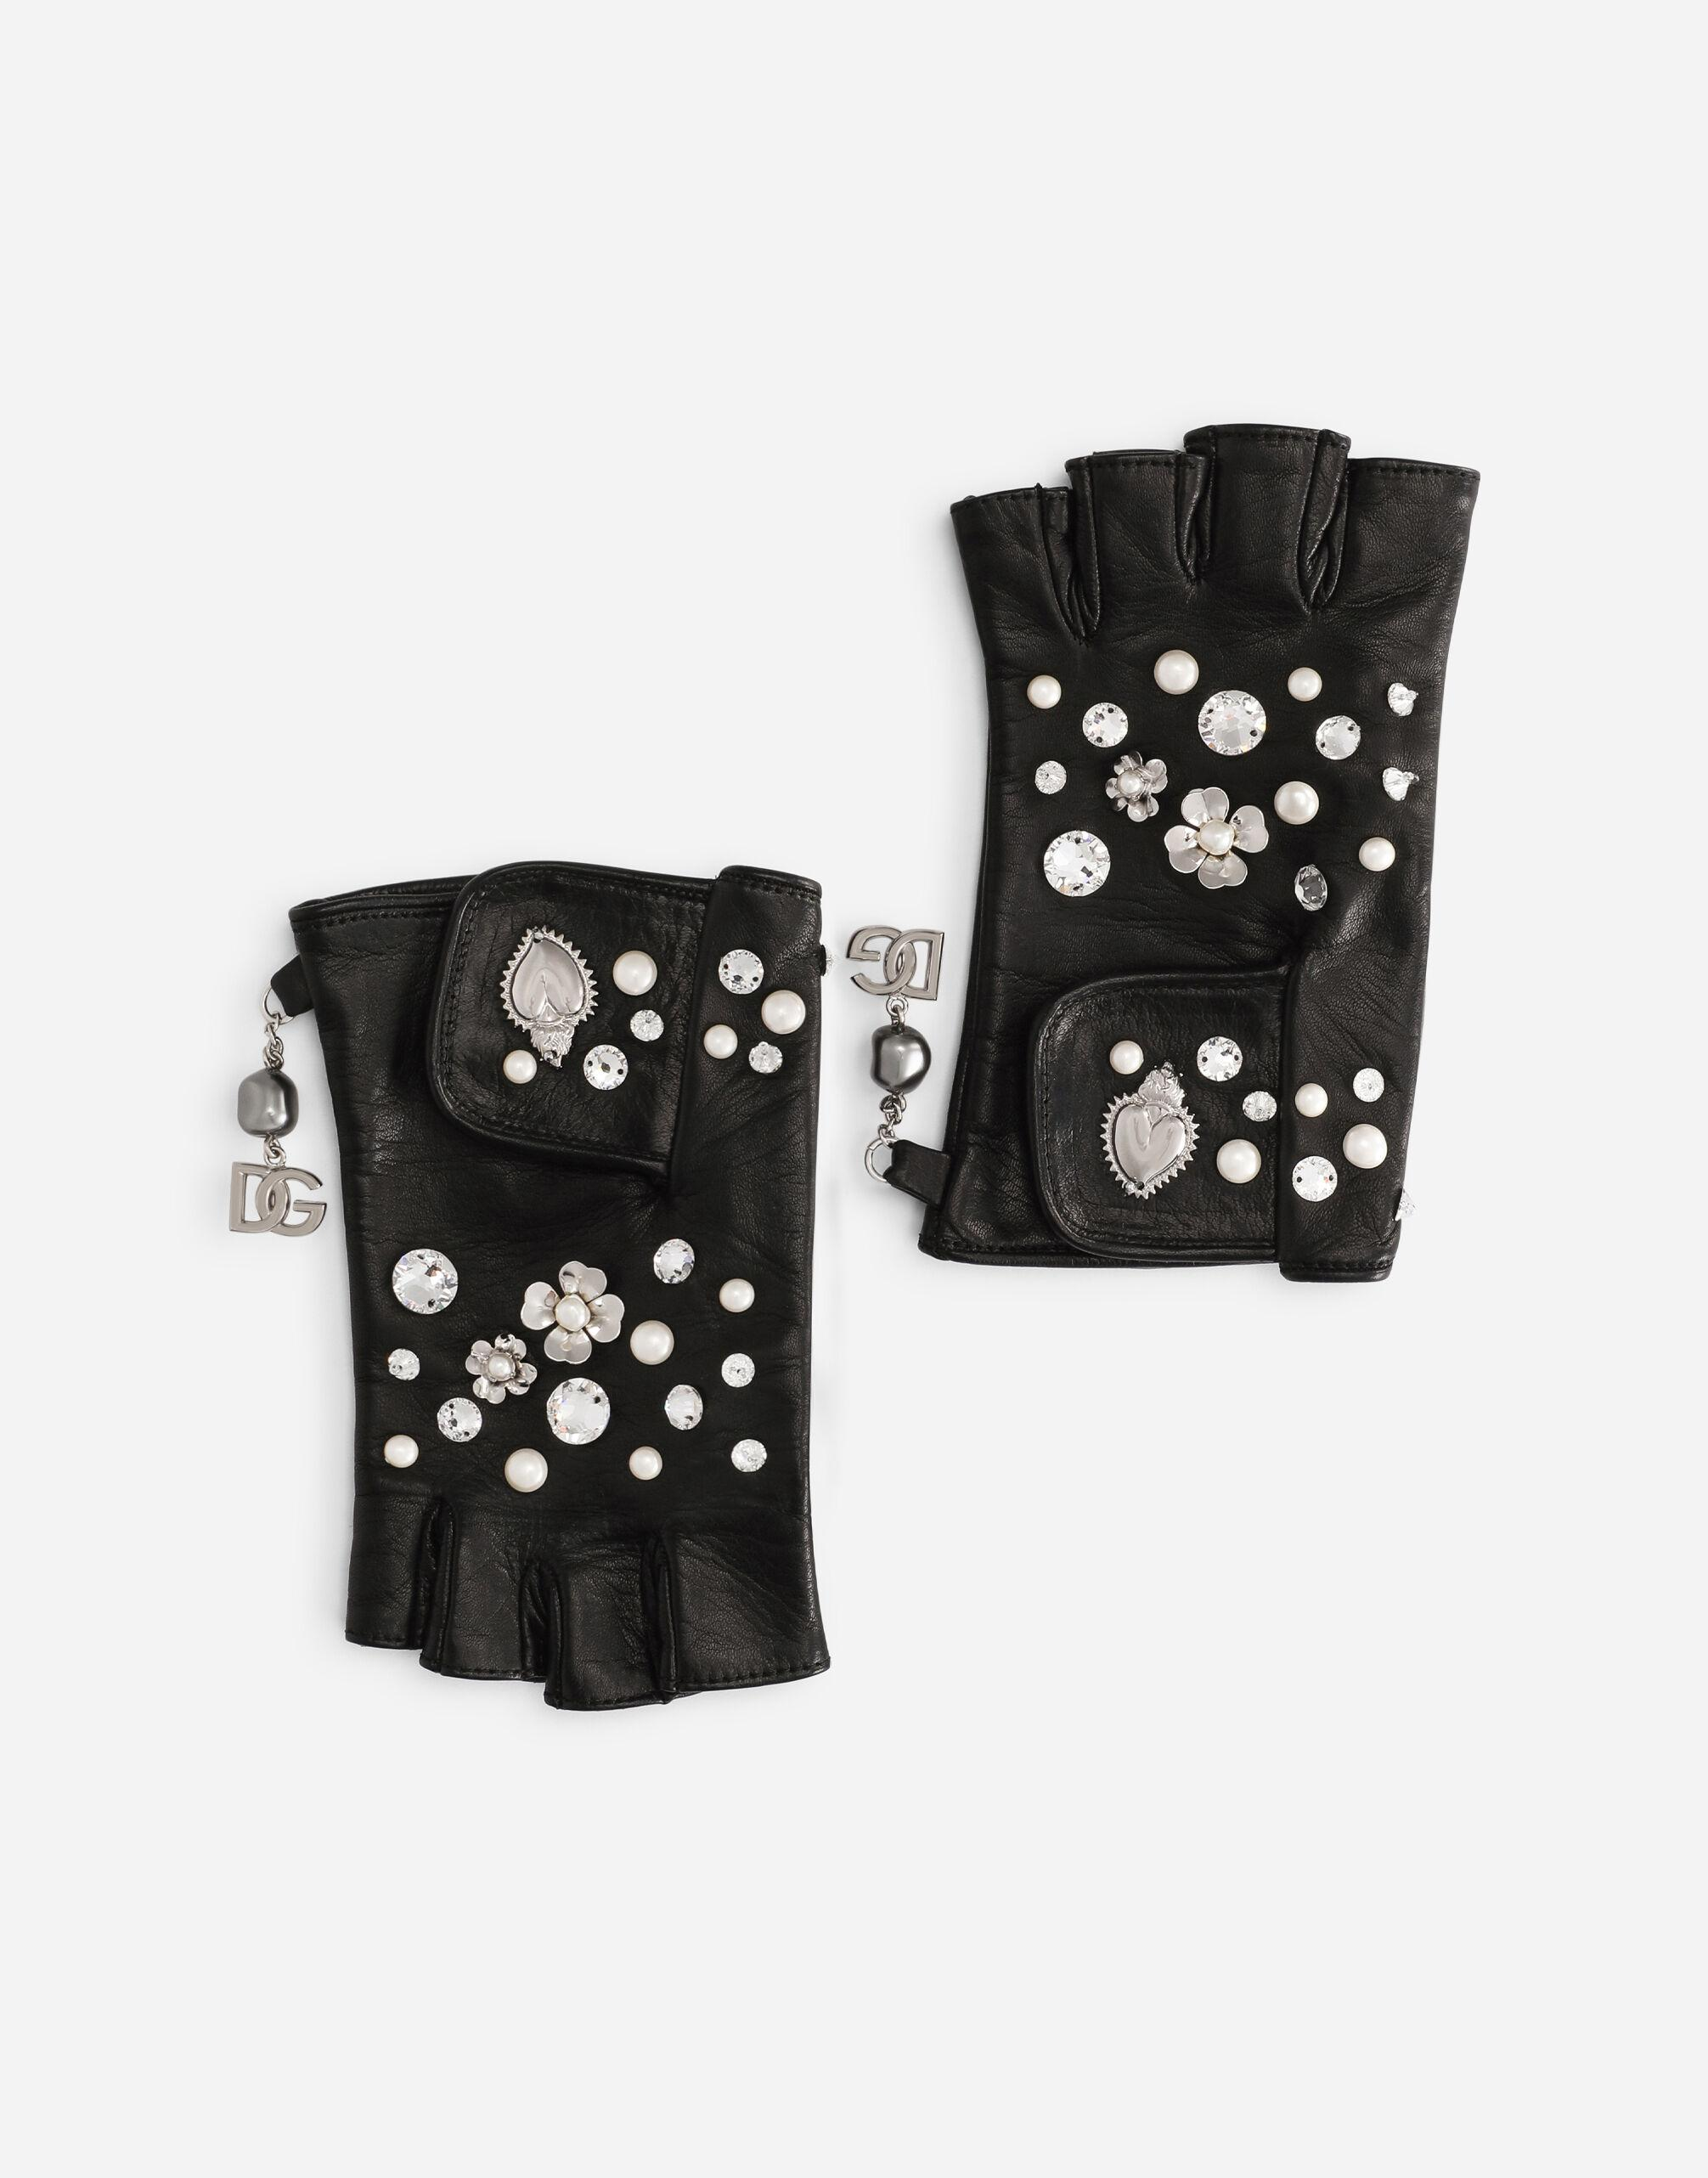 Nappa leather gloves with bejeweled embellishment